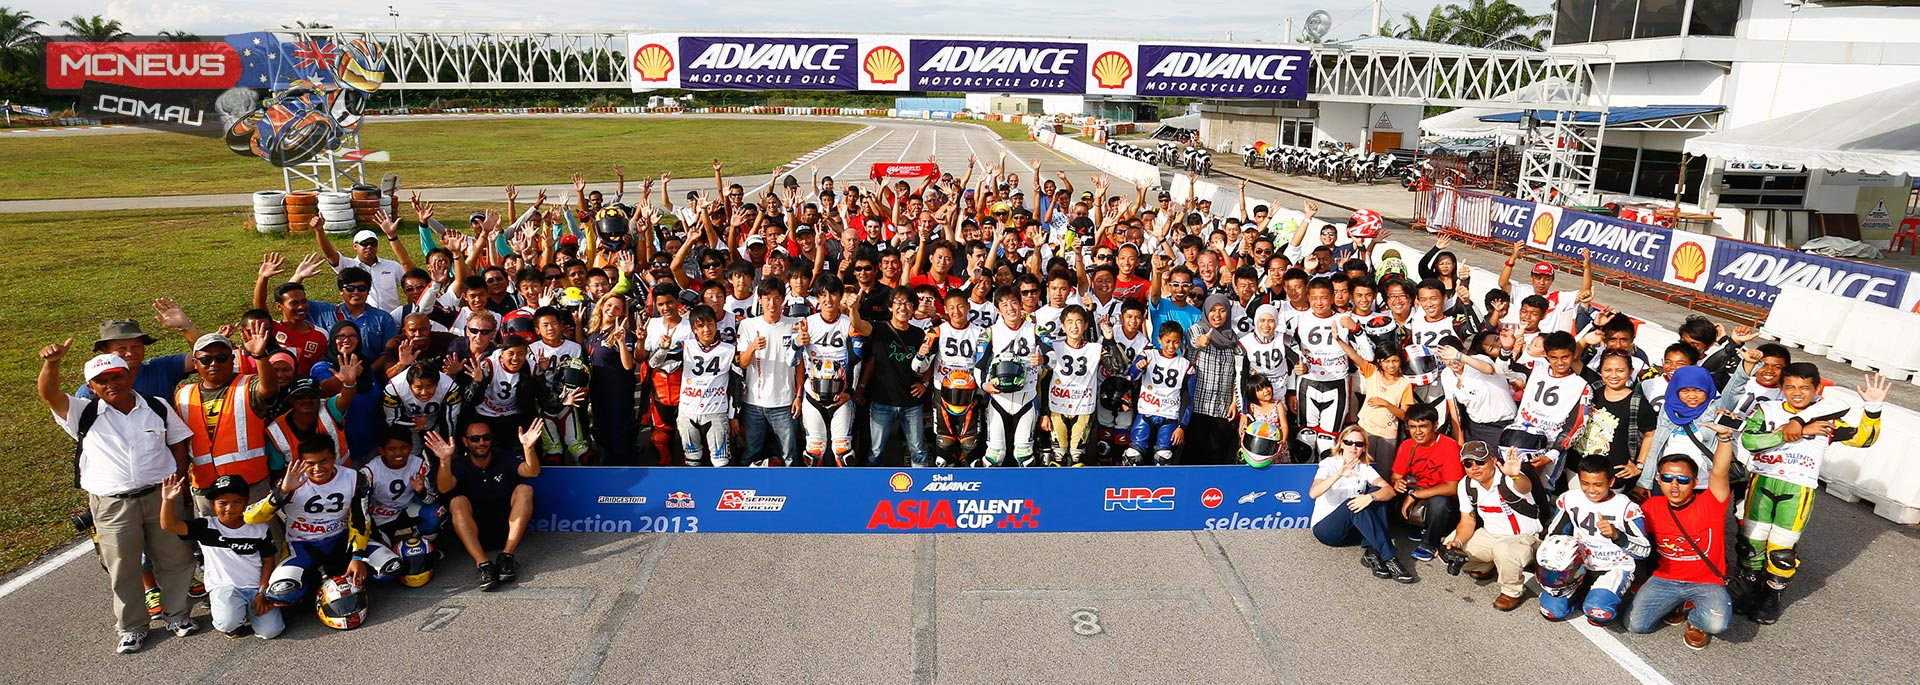 2015 Shell Asia Talent Cup registrations opening soon